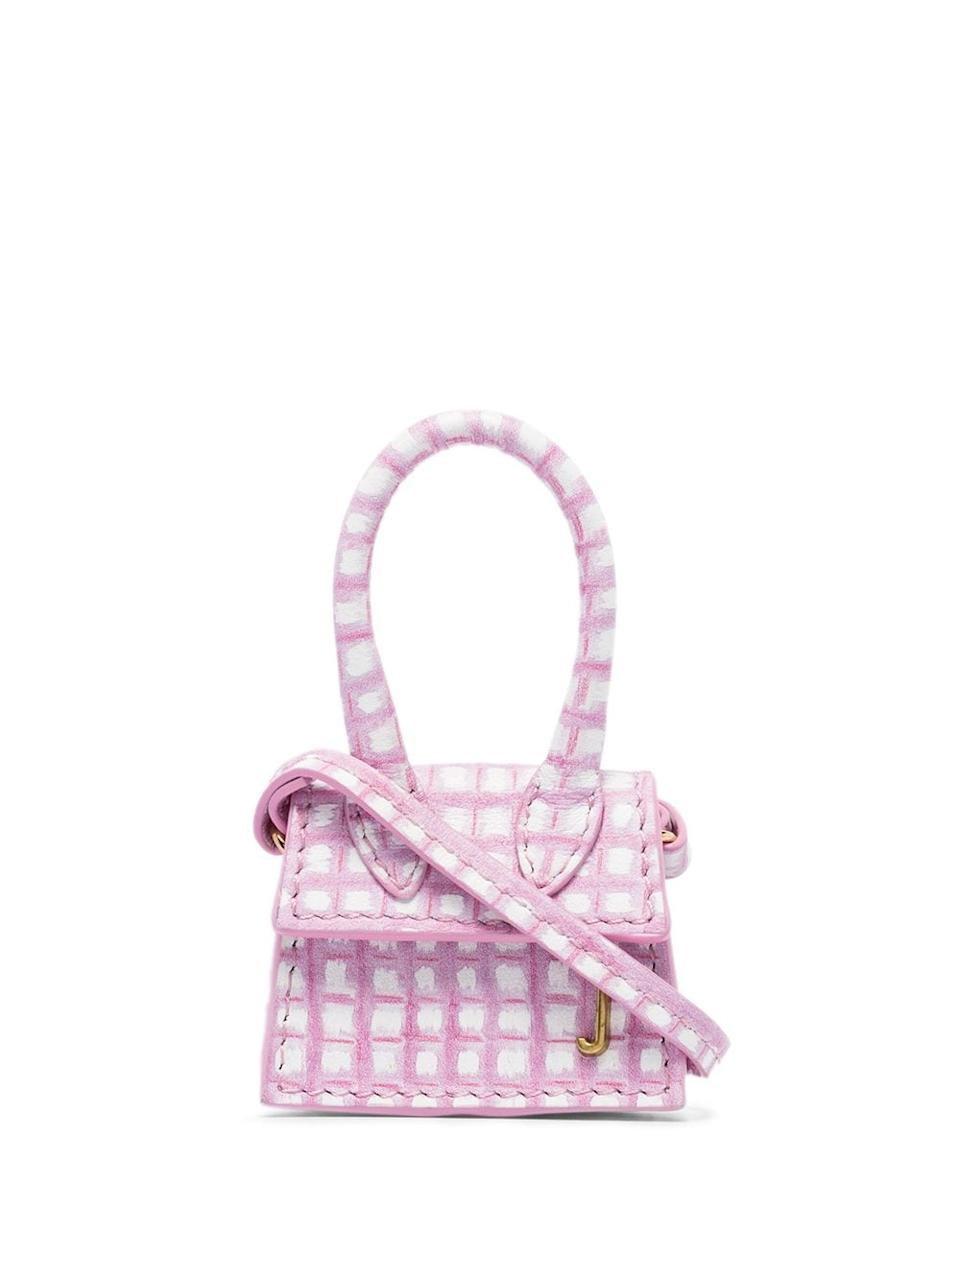 "<h2>Le Petit Chiquito<br></h2>The bag that launched <a href=""https://www.refinery29.com/en-us/2020/01/9200310/lizzo-tiny-purse-jacquemus-tik-tok-video"" rel=""nofollow noopener"" target=""_blank"" data-ylk=""slk:a thousand Lizzo Tweets"" class=""link rapid-noclick-resp"">a thousand Lizzo Tweets</a>. <br><br><strong>Jacquemus</strong> Le Petit Chiquito, $, available at <a href=""https://go.skimresources.com/?id=30283X879131&url=https%3A%2F%2Fwww.farfetch.com%2Fshopping%2Fwomen%2Fjacquemus-le-petit-chiquito-mini-bag-item-15383079.aspx"" rel=""nofollow noopener"" target=""_blank"" data-ylk=""slk:Farfetch"" class=""link rapid-noclick-resp"">Farfetch</a>"